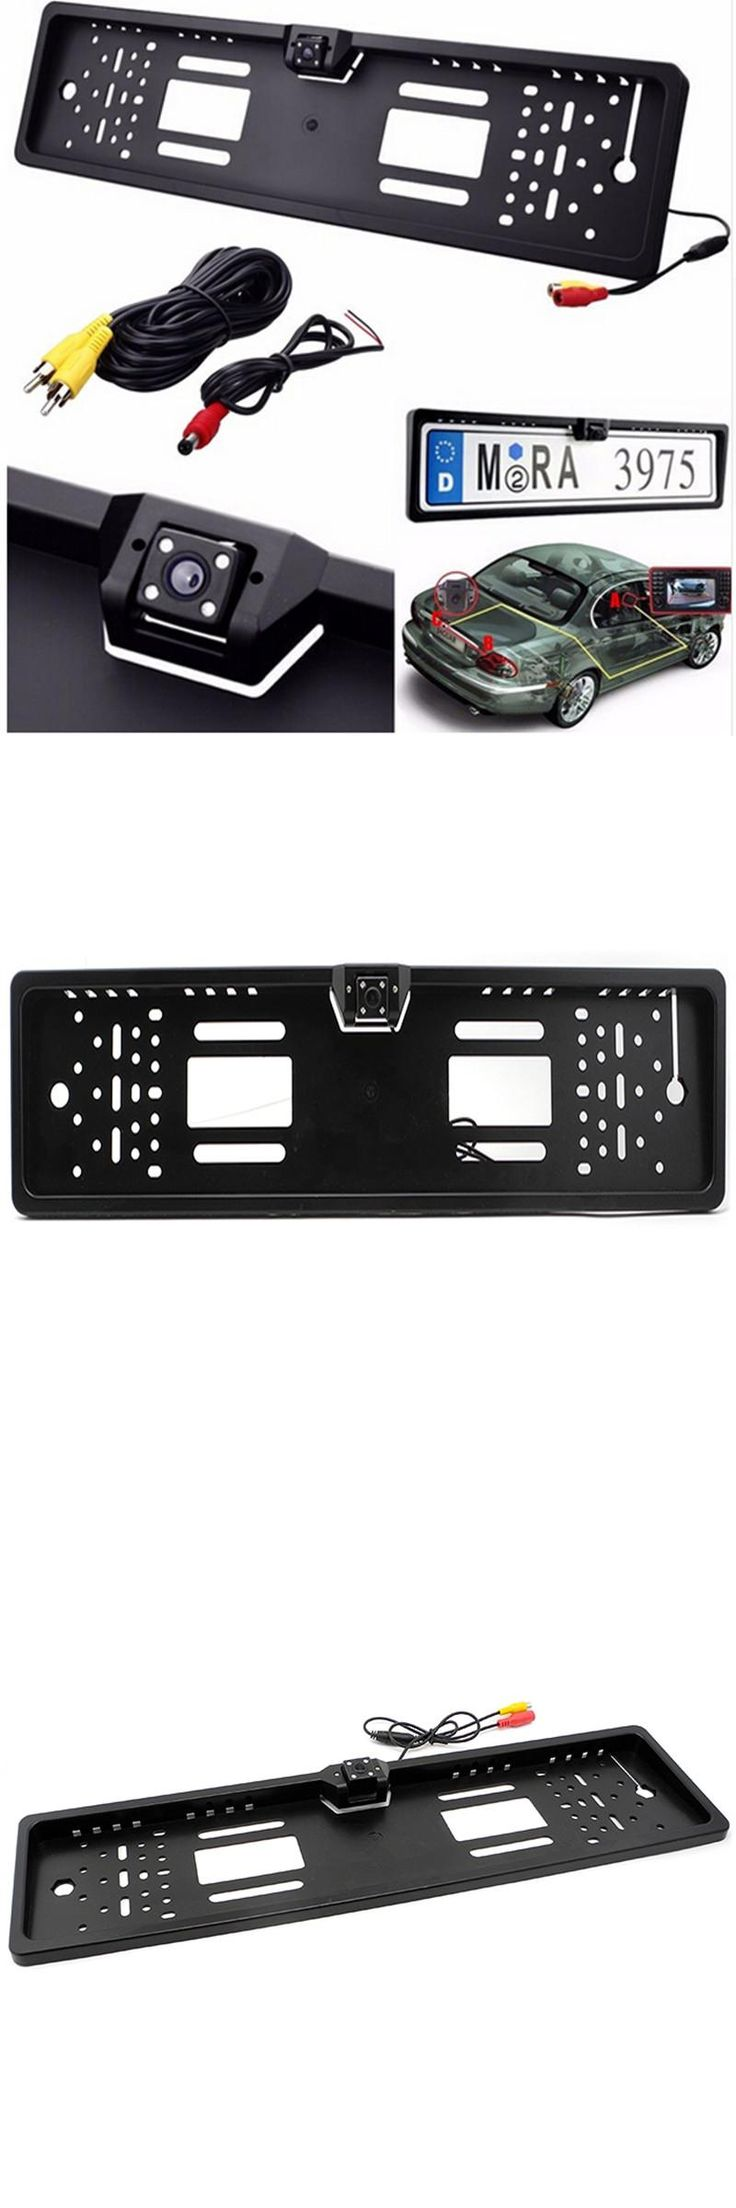 [Visit to Buy] New Europe license plate frame 170 European Universla Car License Plate Frame Auto Reverse Rear View Backup Camera 4 LED #Advertisement